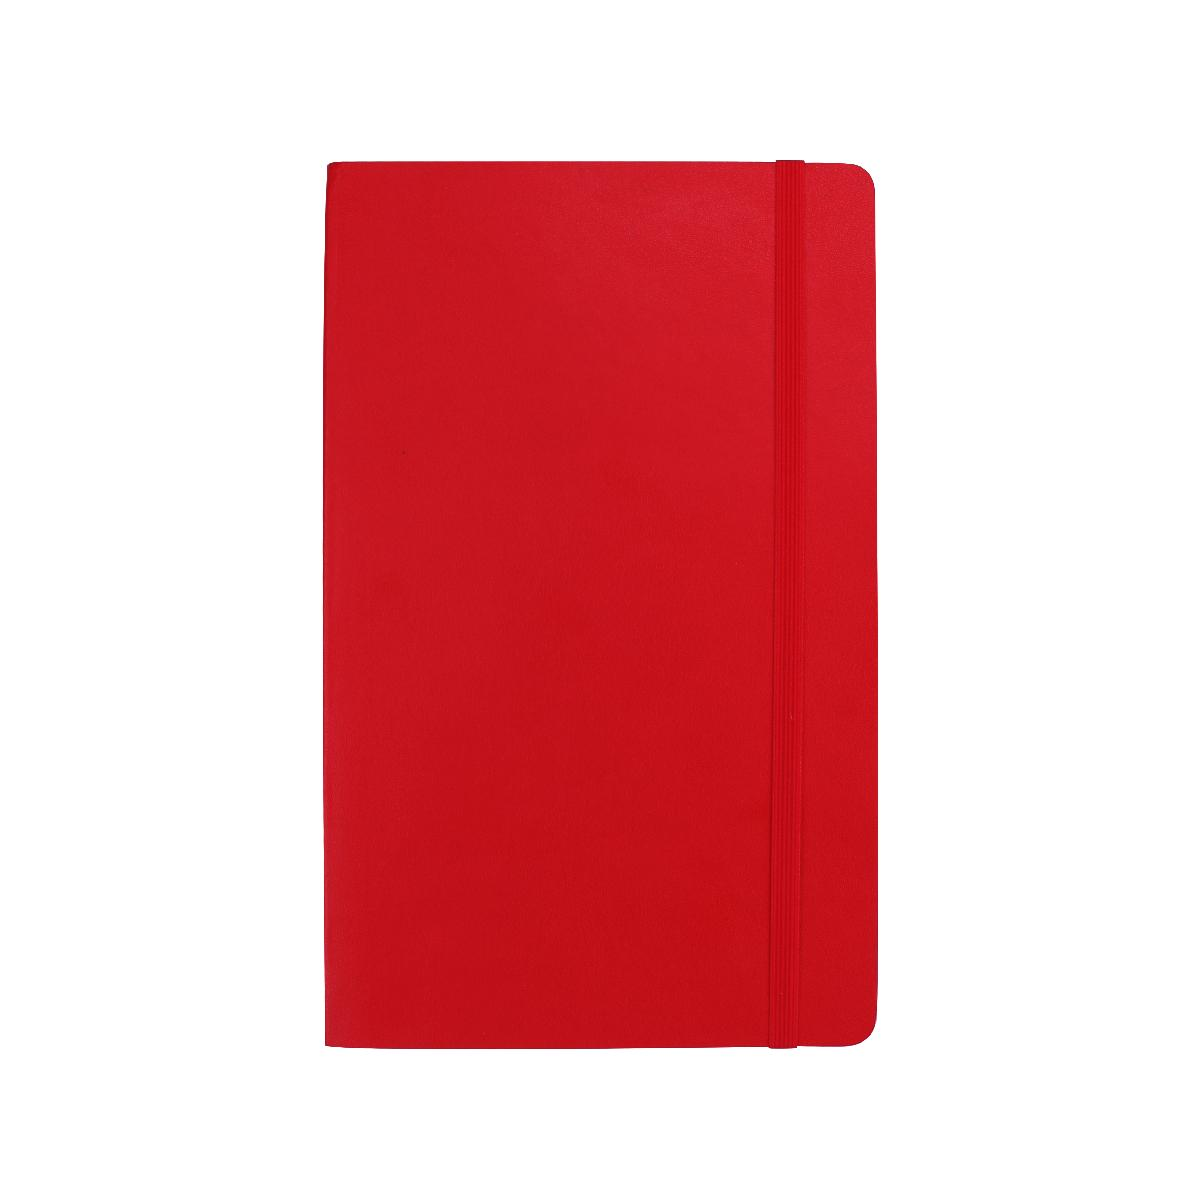 QNOTE Soft PU Notebook With Pocket - Large